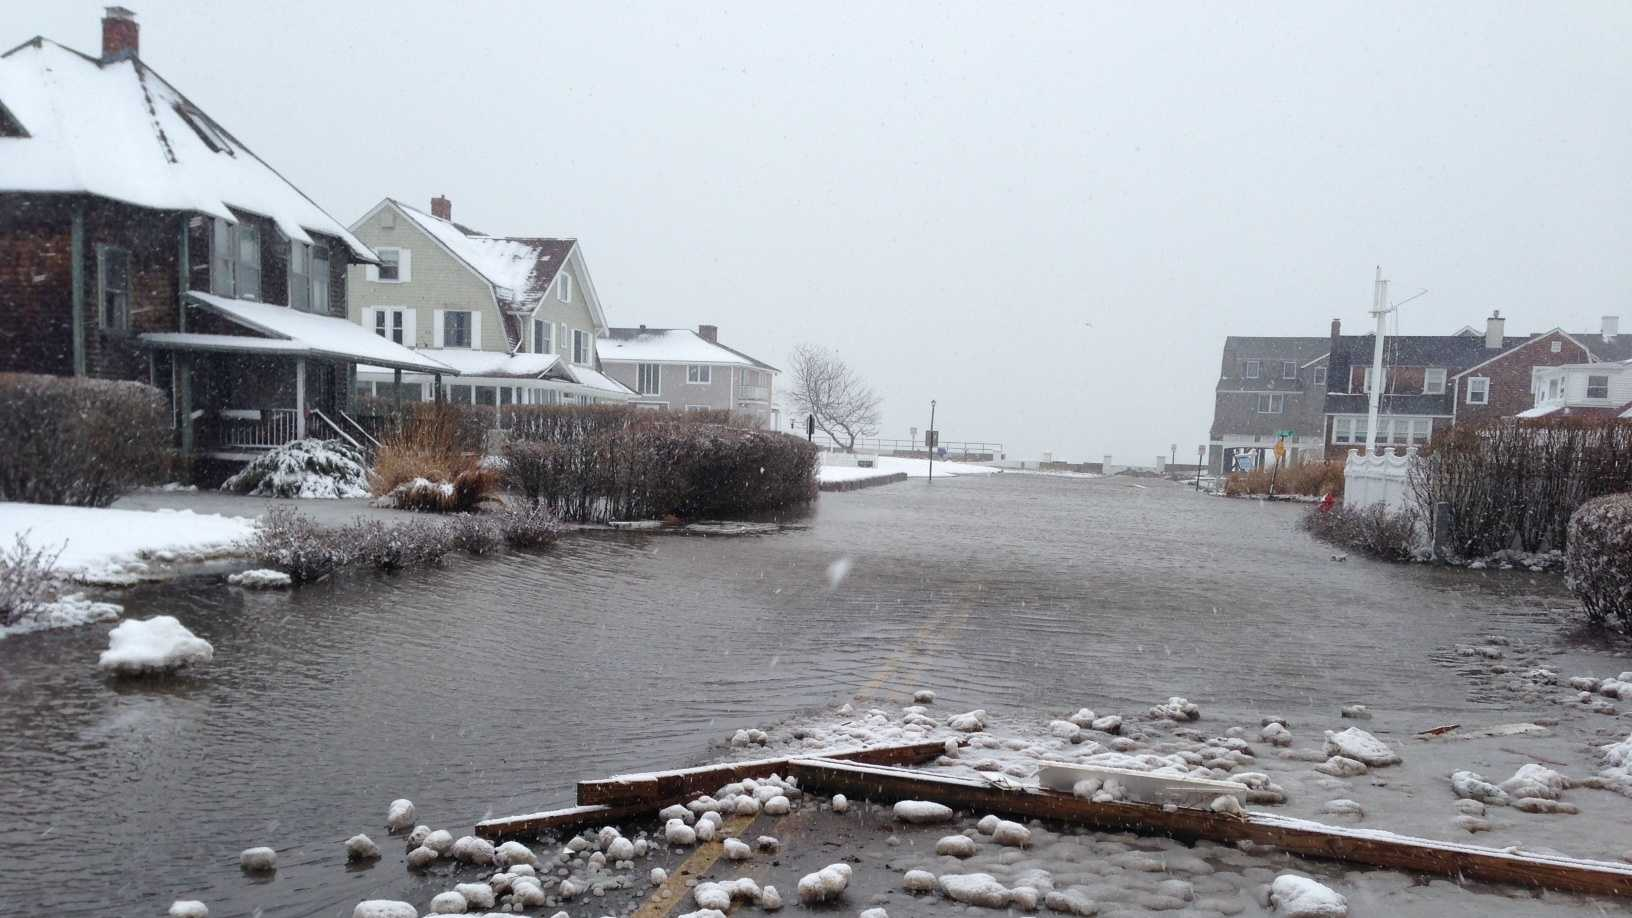 ulocal - Damage in North Scituate